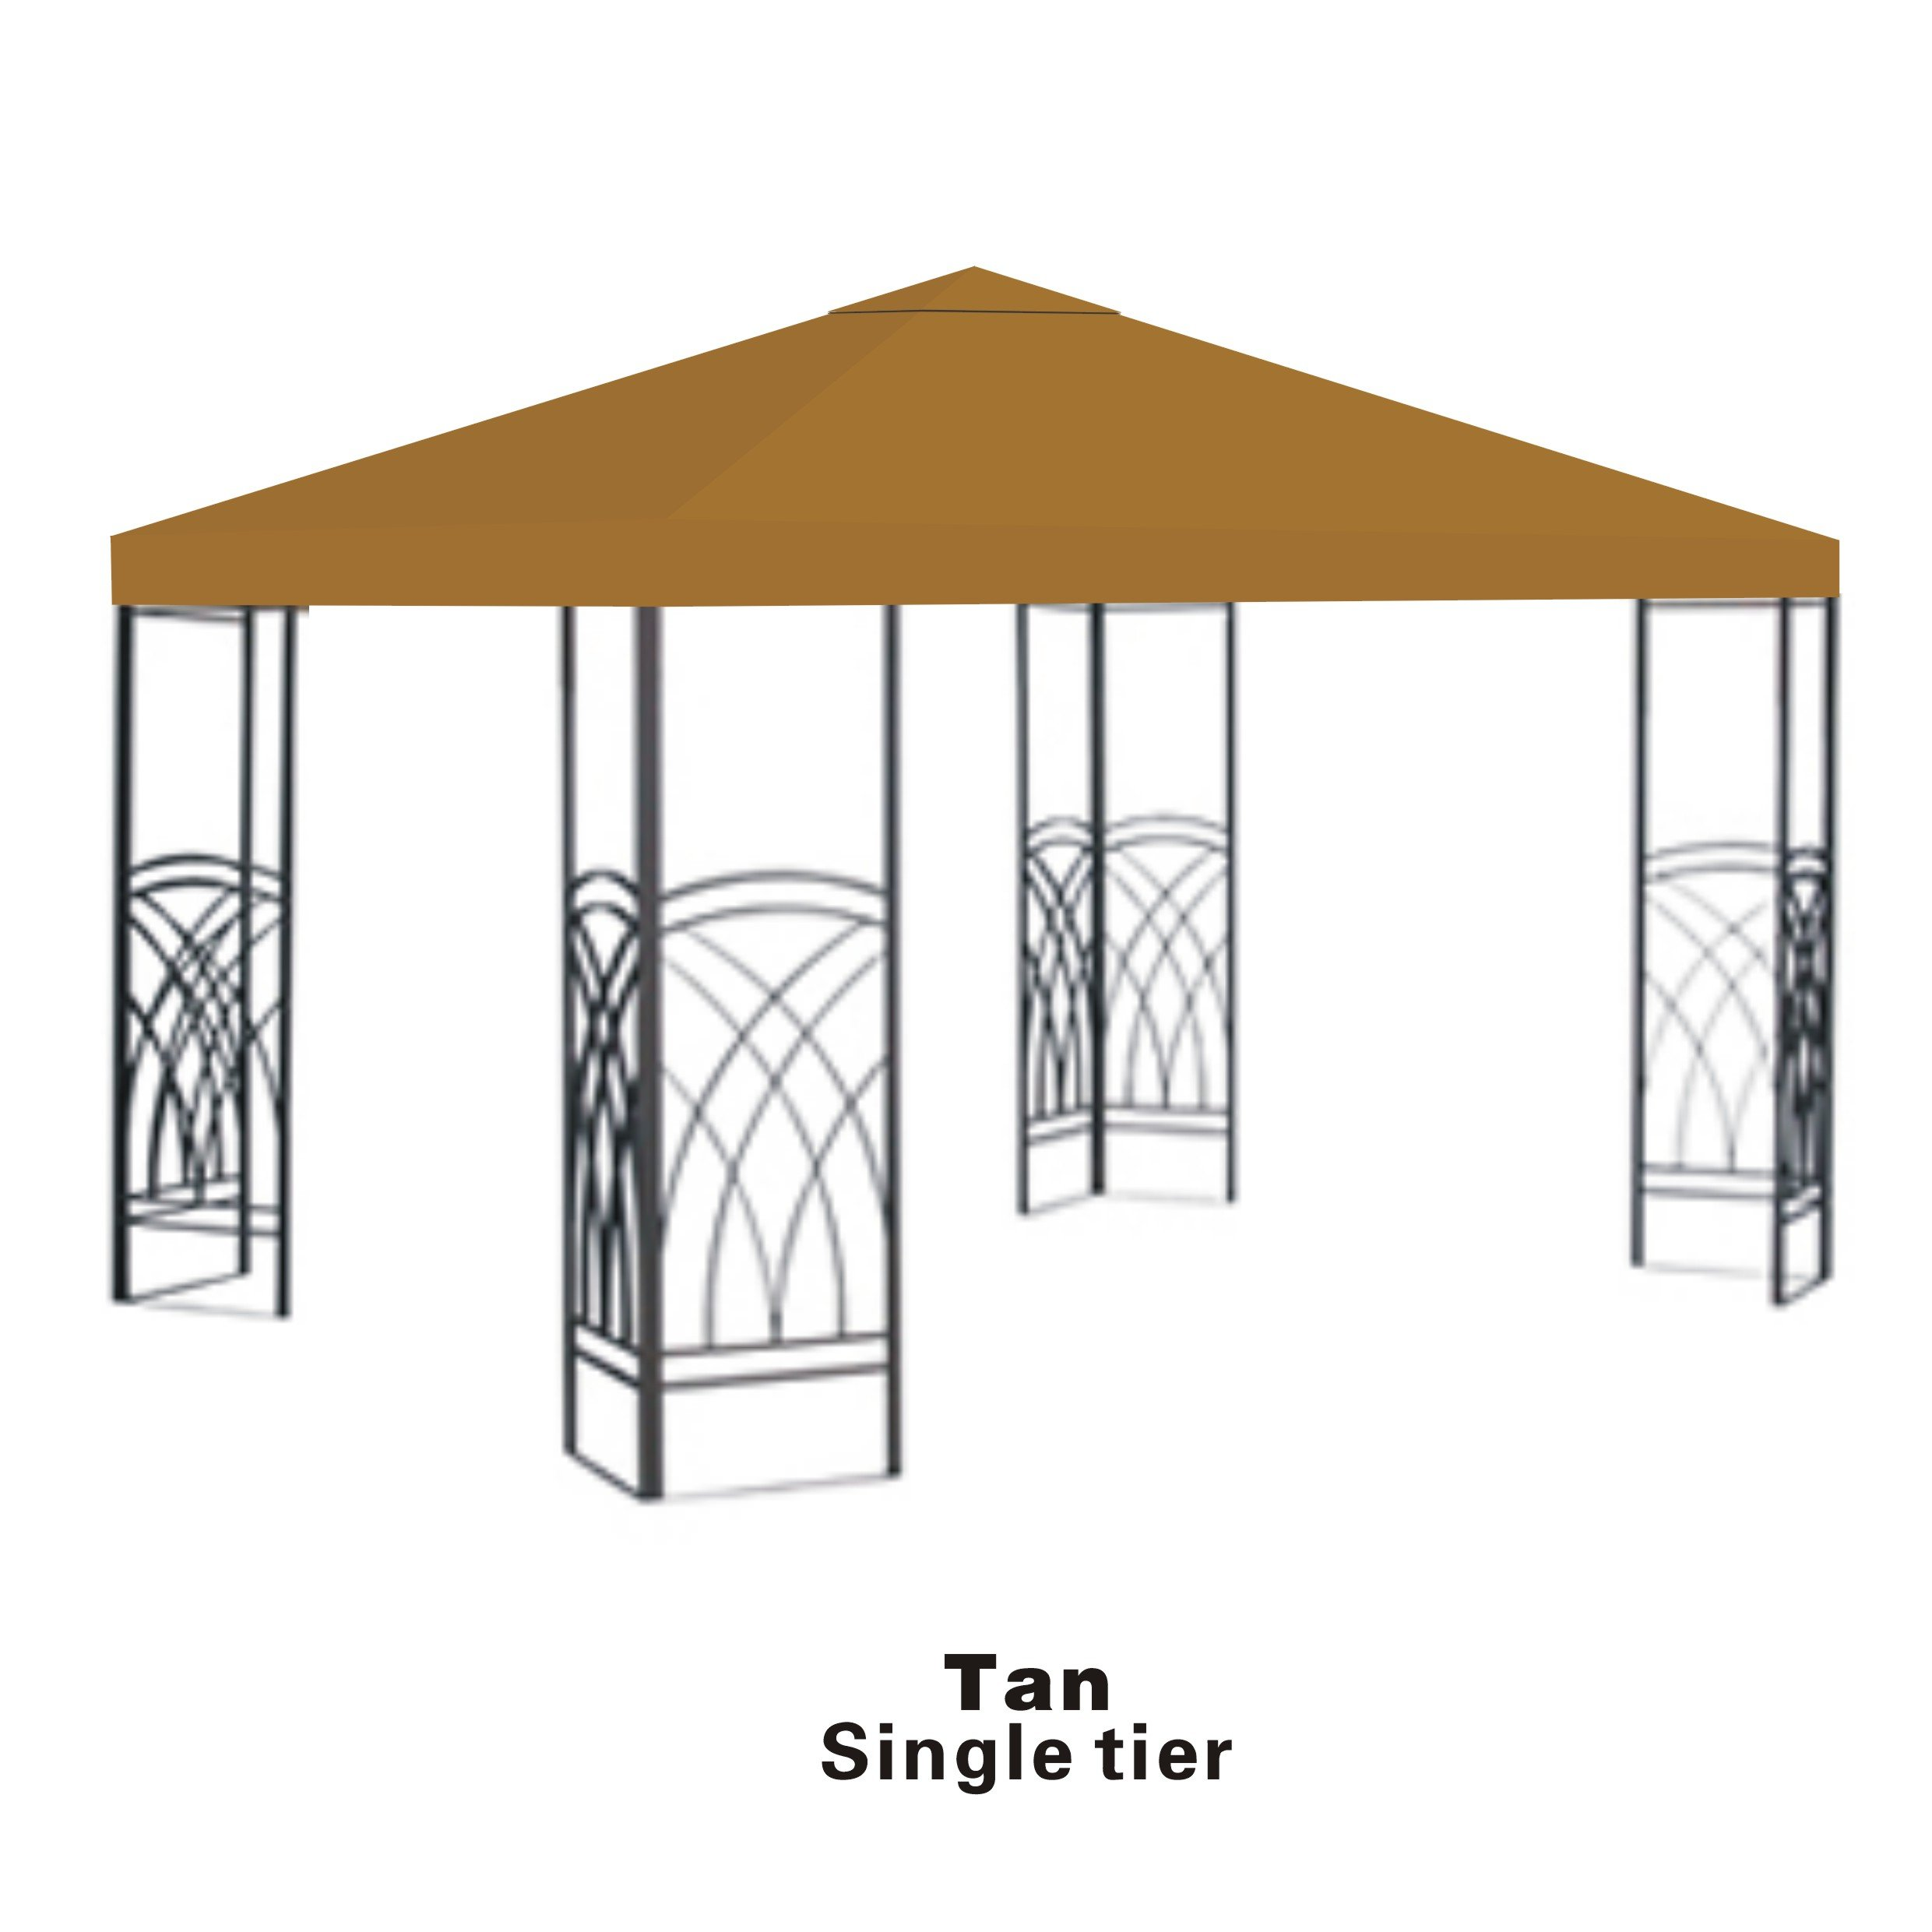 STRONG CAMEL Replacement 10'X10'gazebo canopy top patio pavilion cover sunshade plyester single tier-tan by Strong Camel